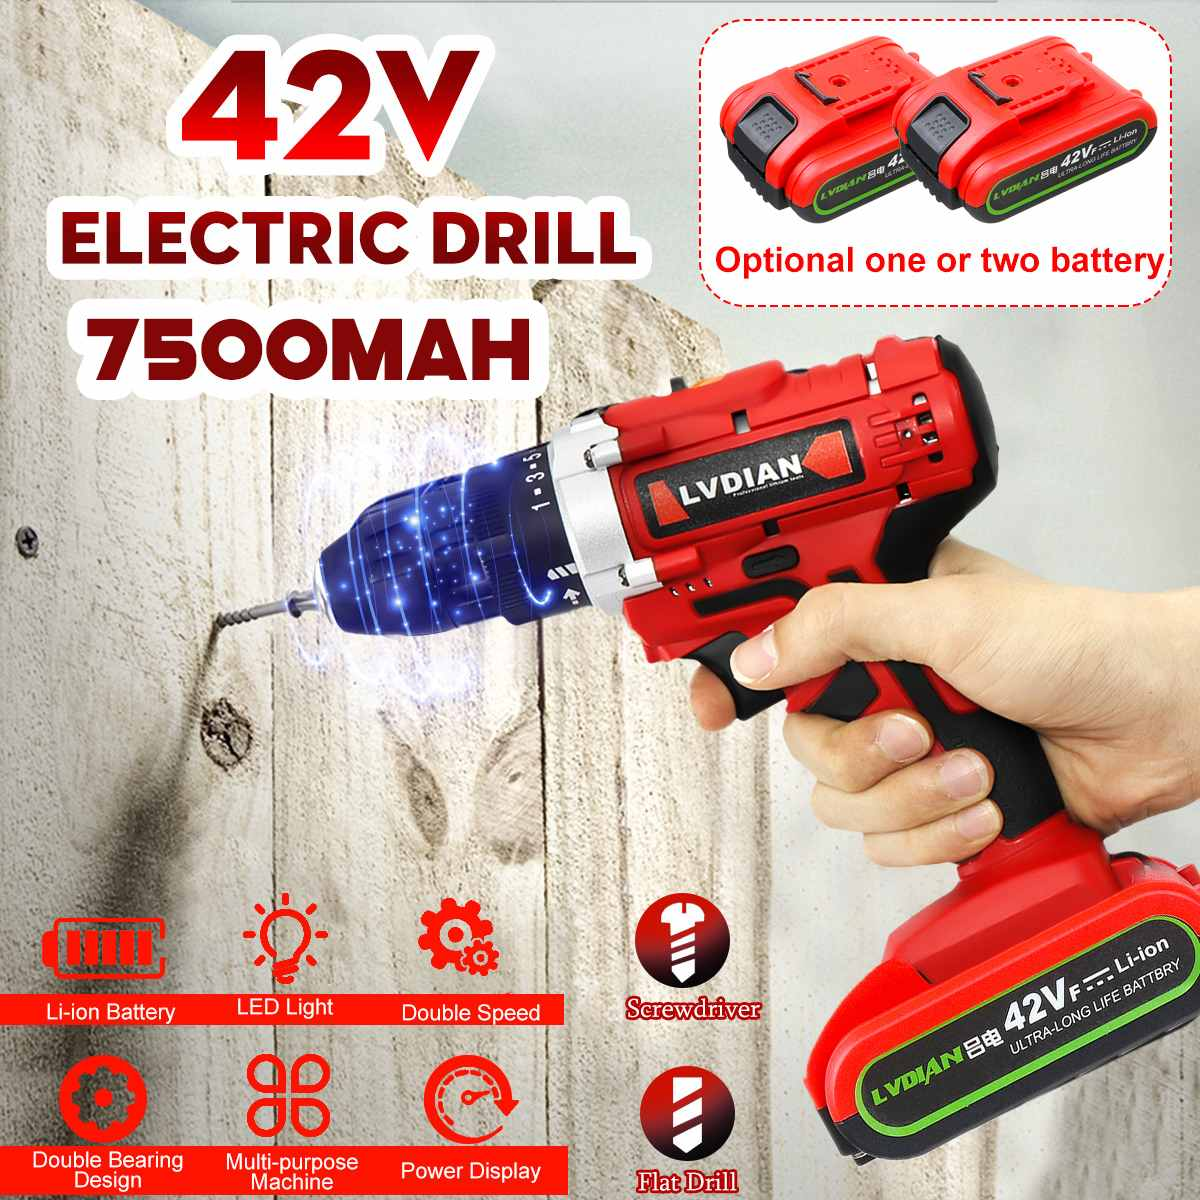 42V Electric Drill Electric Cordless Impact Drill Double Speed 50Nm Screwdriver 25+1 Torque Power LED Light 2 Battery Polisher